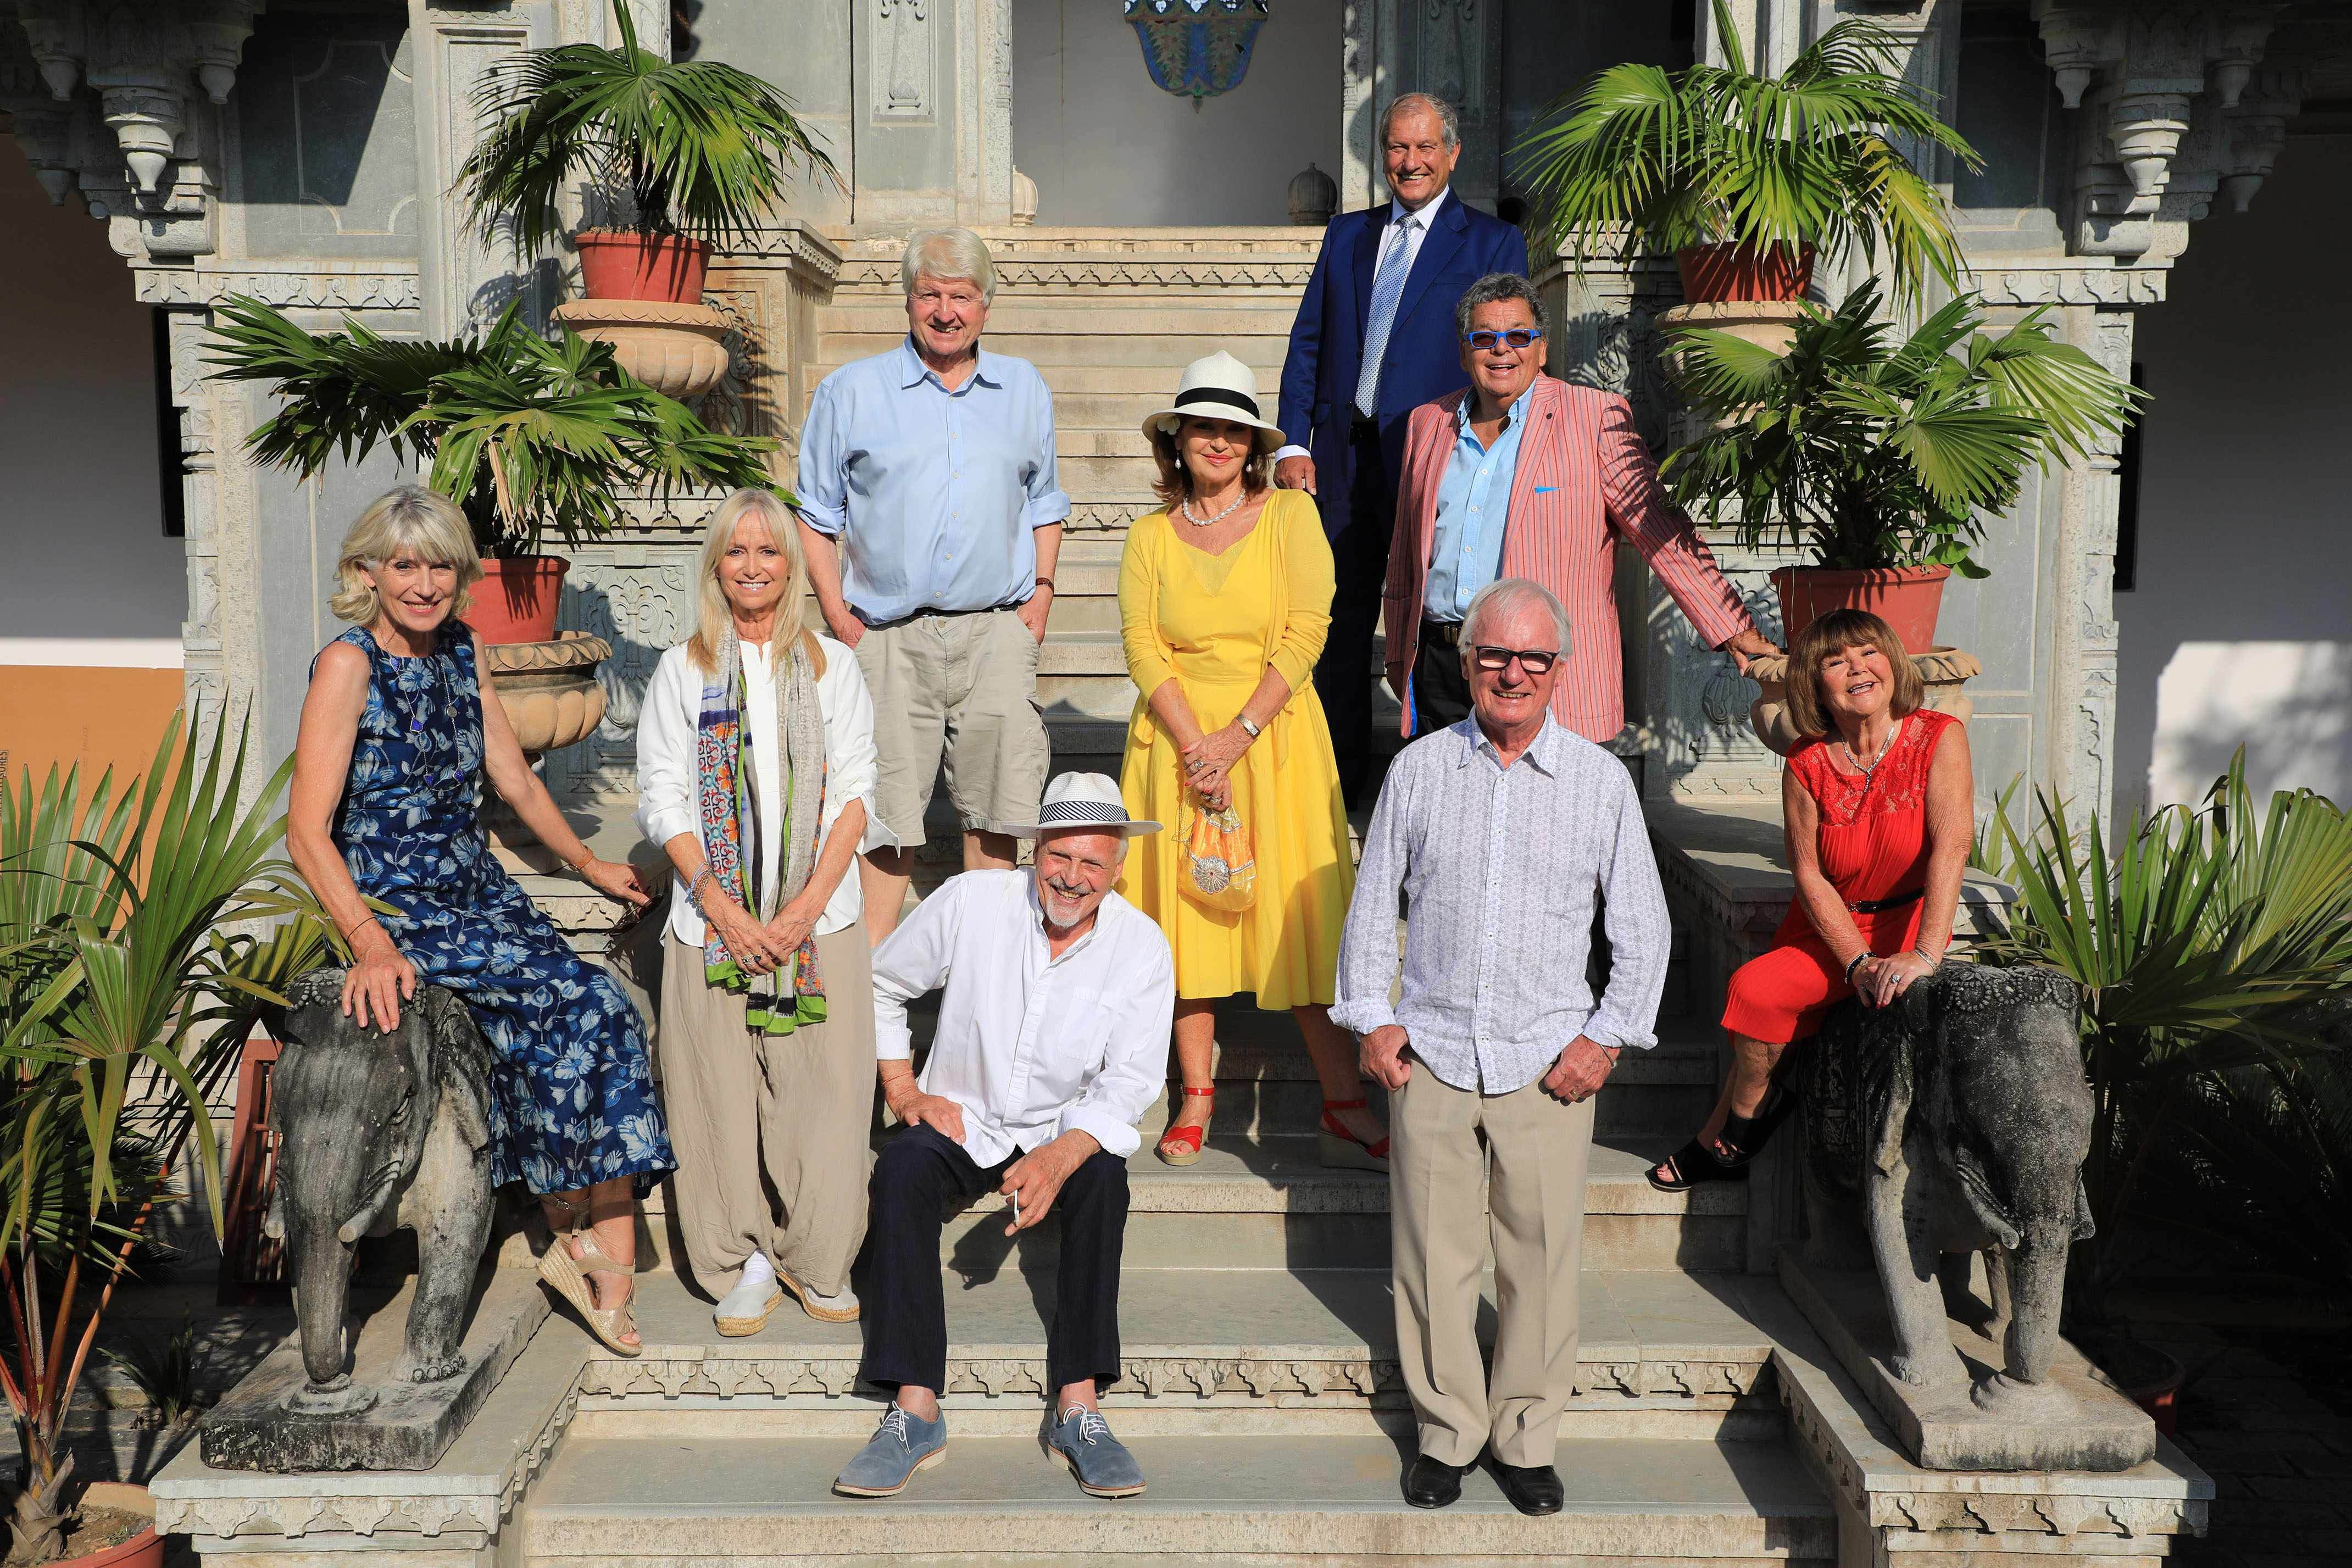 Programme Name: The Real Marigold Hotel S3 - TX: n/a - Episode: n/a (No. n/a) - Picture Shows: head off on an adventure of a lifetime to India, road-testing retirement in Udaipur, in the western Indian state of Rajasthan. Selina Scott, Susan George, Stanley Johnson, Peter Dean, Stephanie Beacham, Bob Champion, Ian Tough, Syd Little, Janette Tough - (C) Twofour/Nikolaz Godet - Photographer: Nikolaz Godet